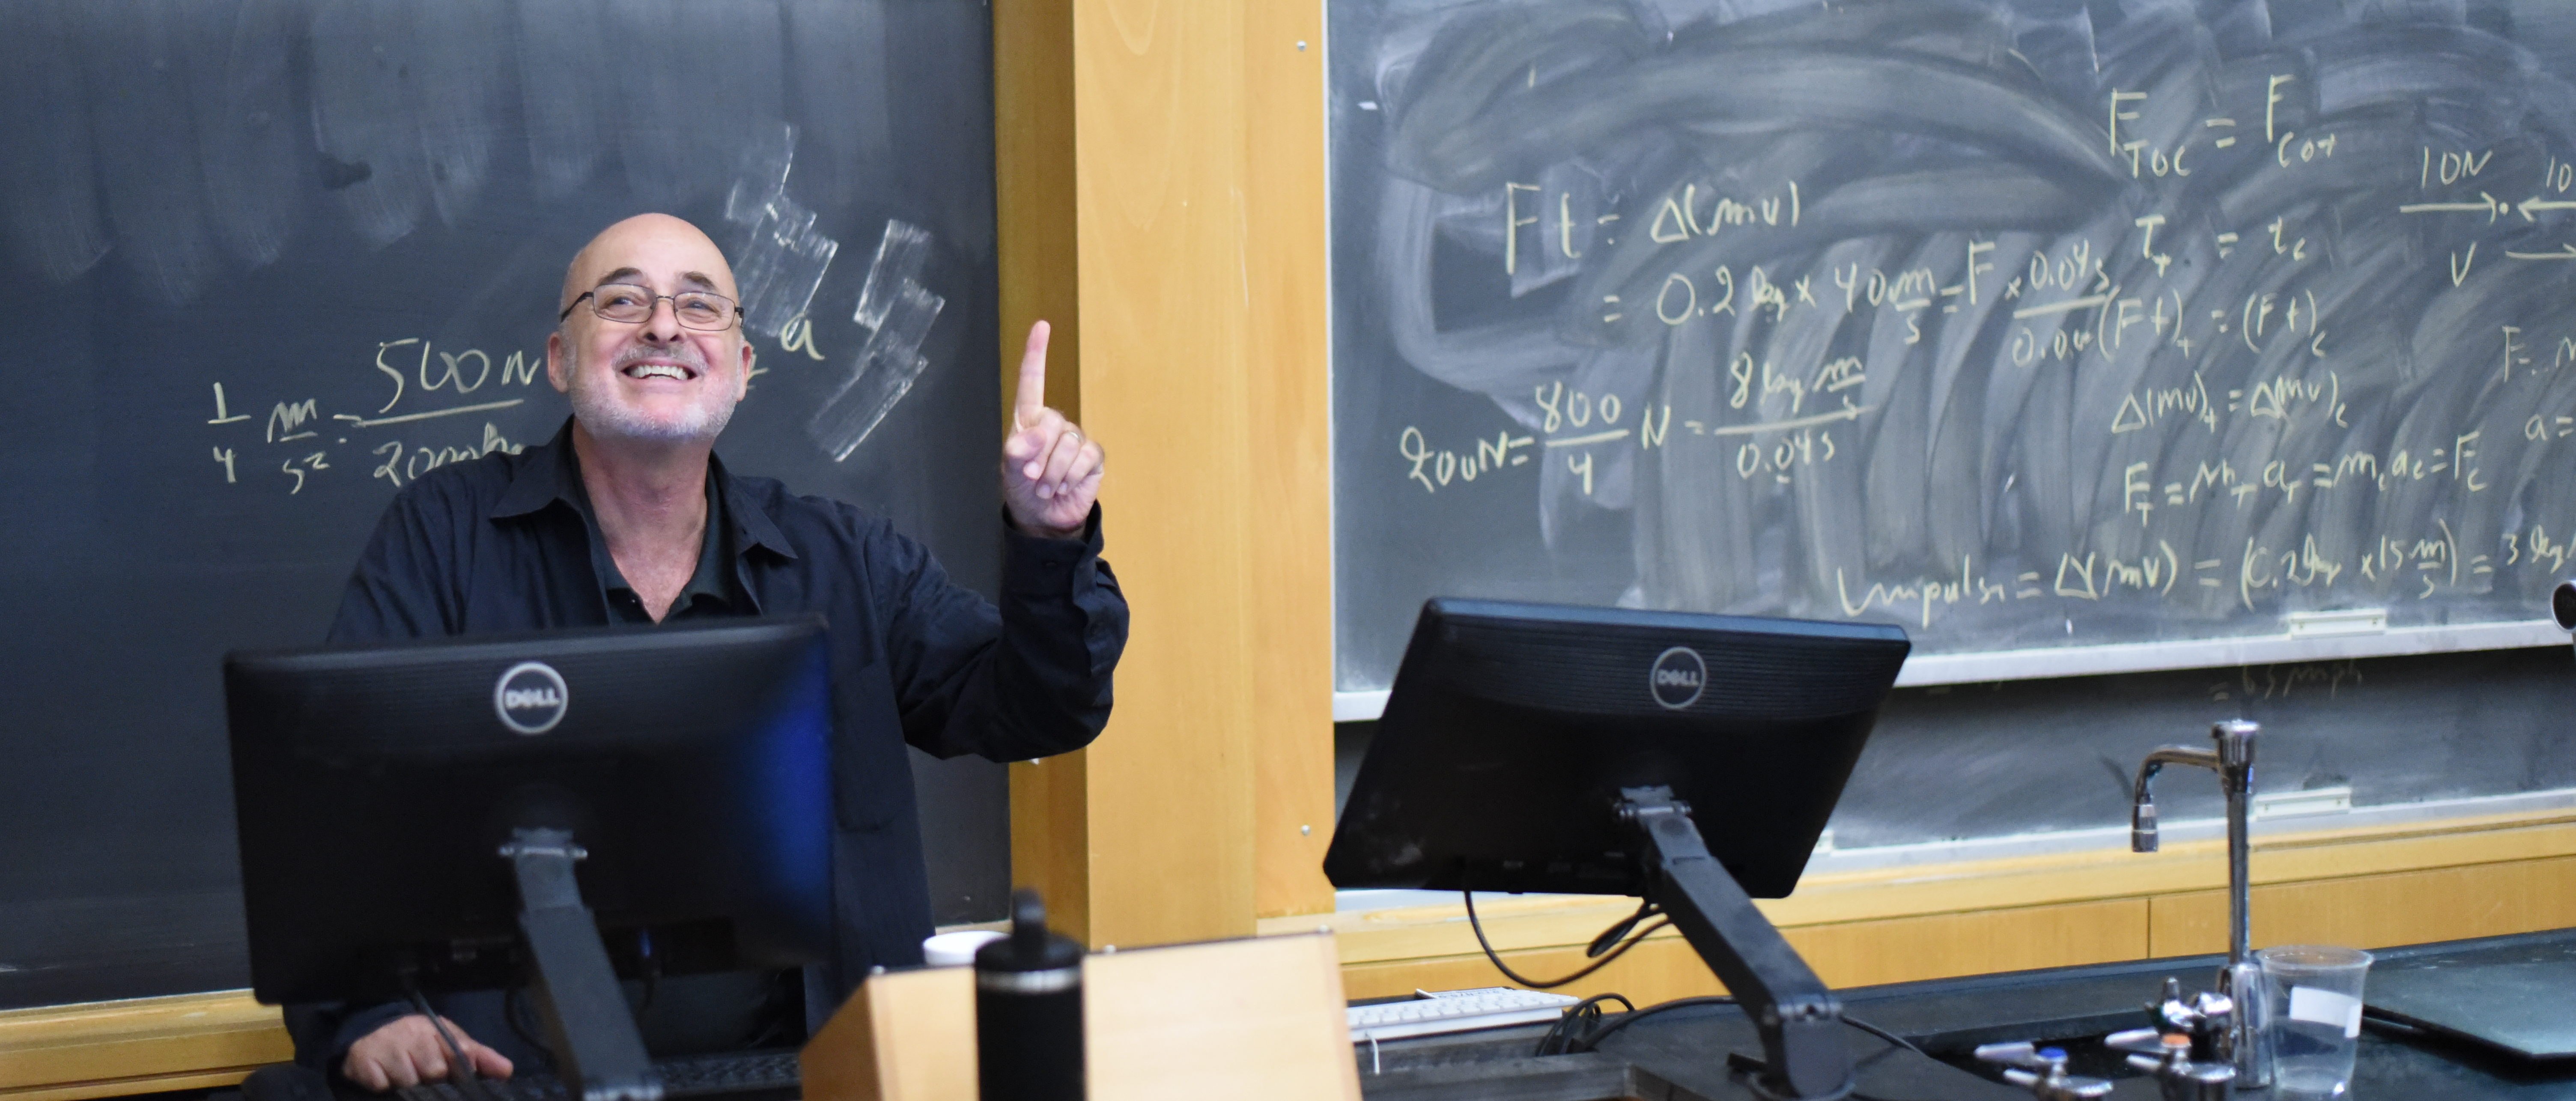 David Brin speaking at physics colloquium